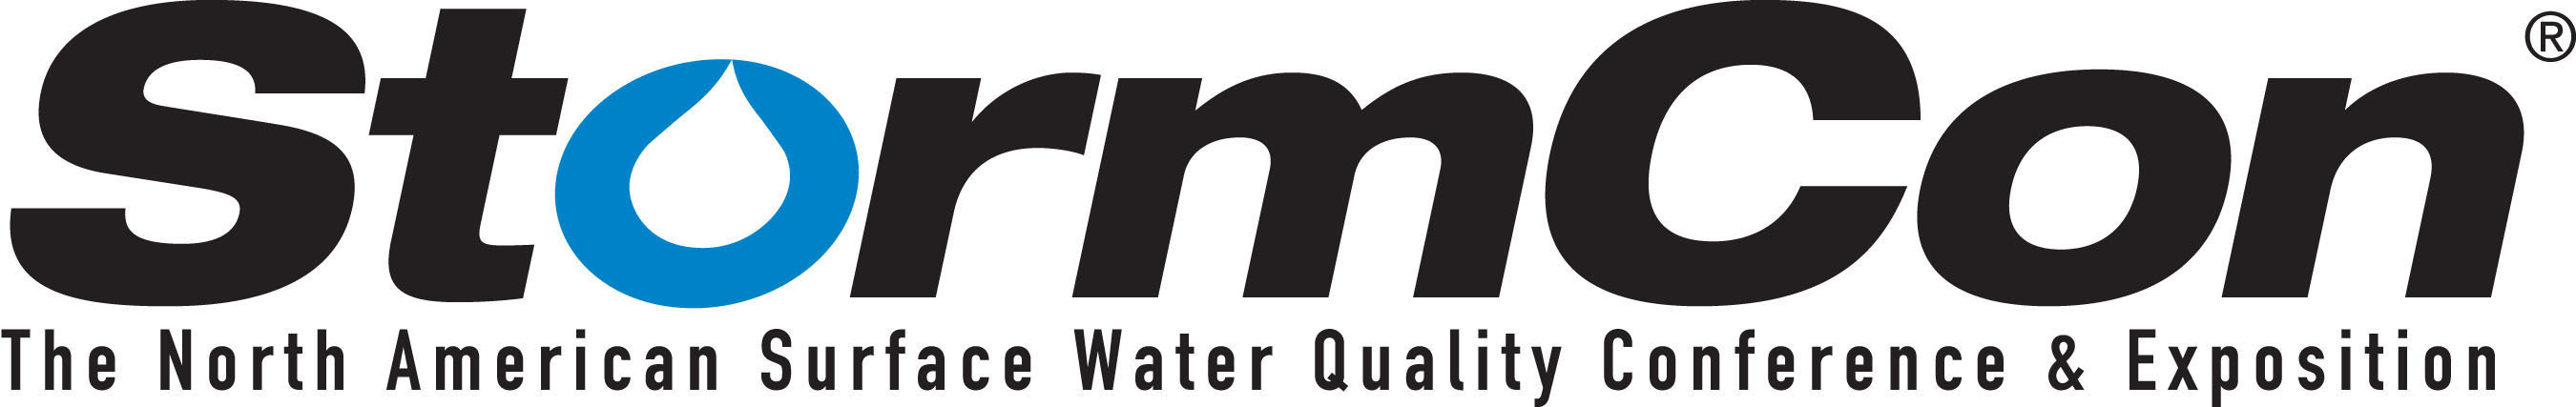 StormCon is the world's largest surface water-quality event, drawing attendees from around the world every year to find cost-effective solutions to water pollution problems.